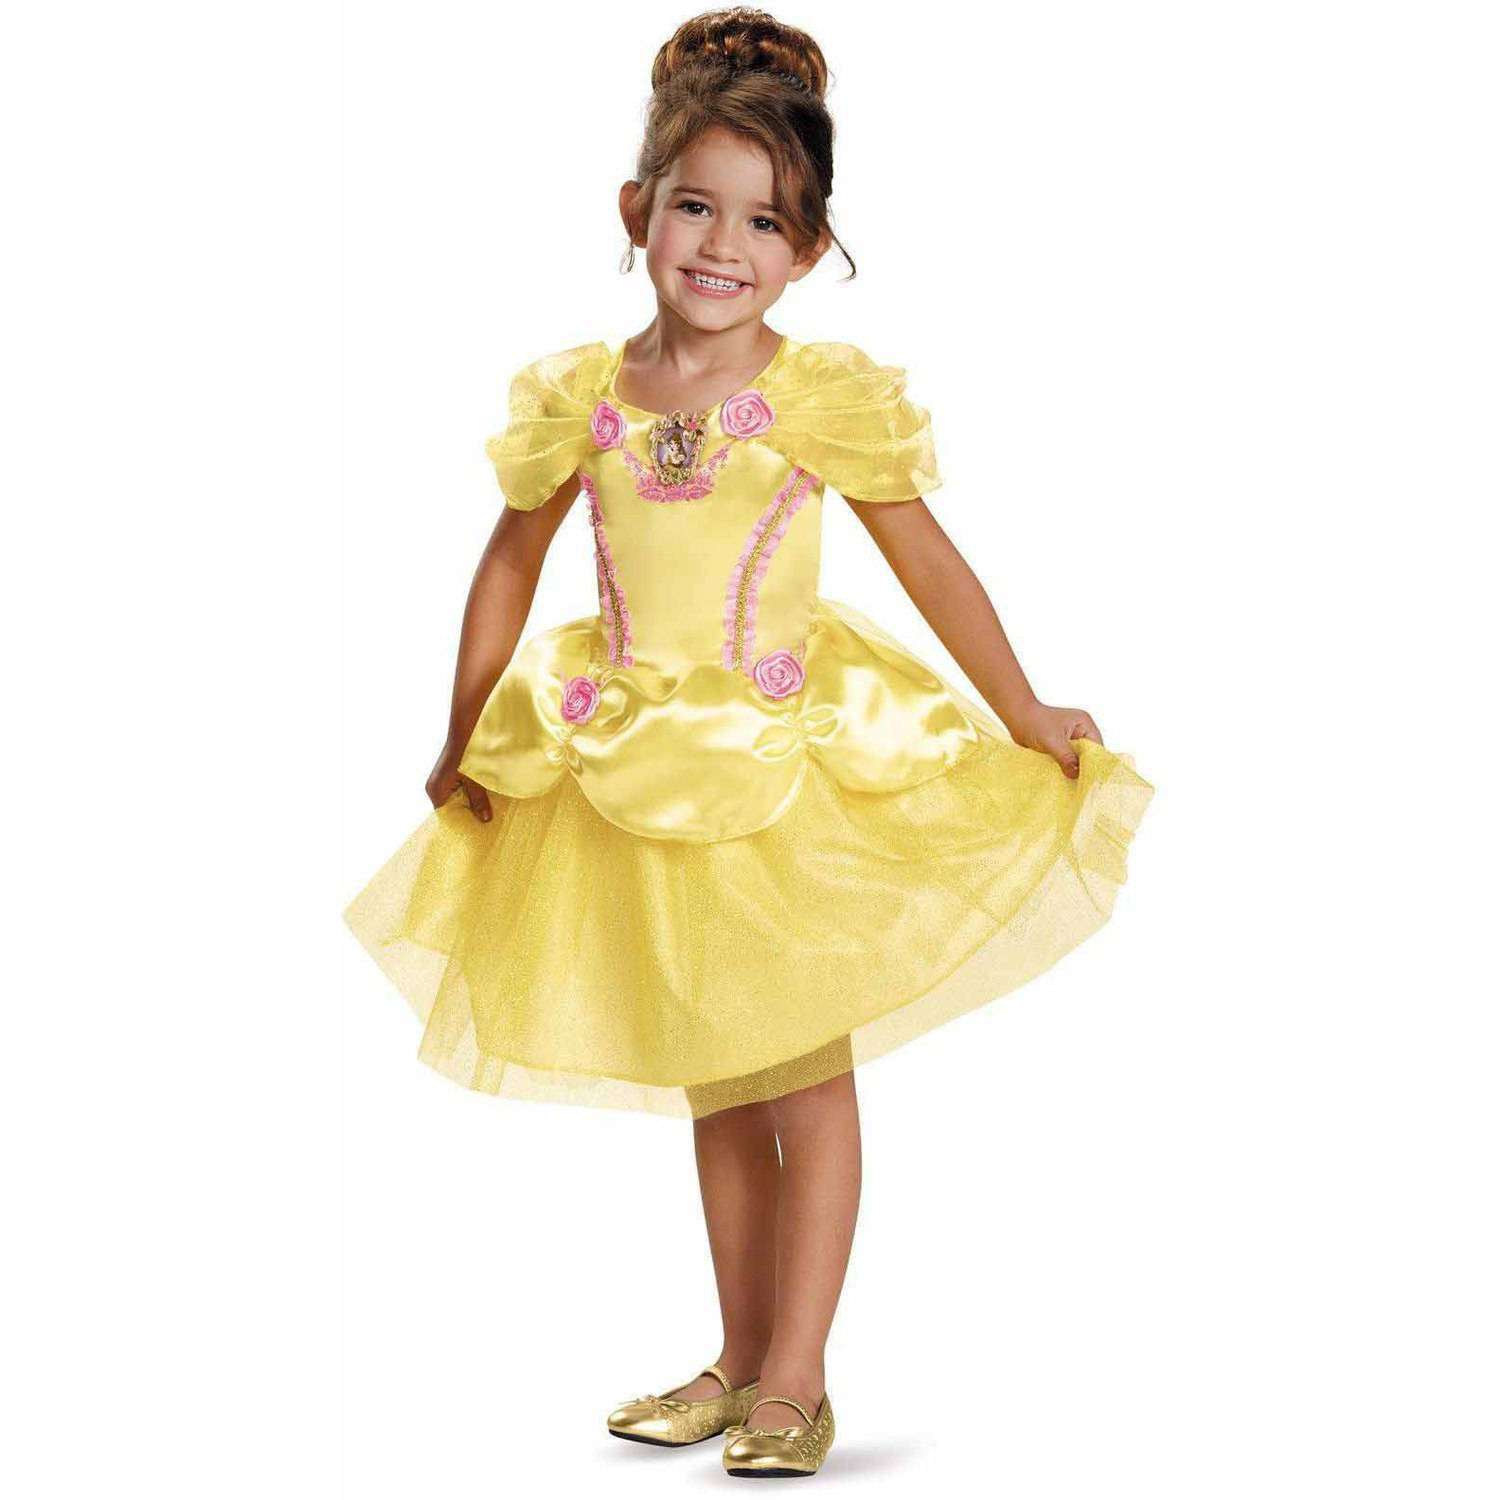 reduced price product image disney princess belle classic toddler halloween costume - Where To Buy Toddler Halloween Costumes